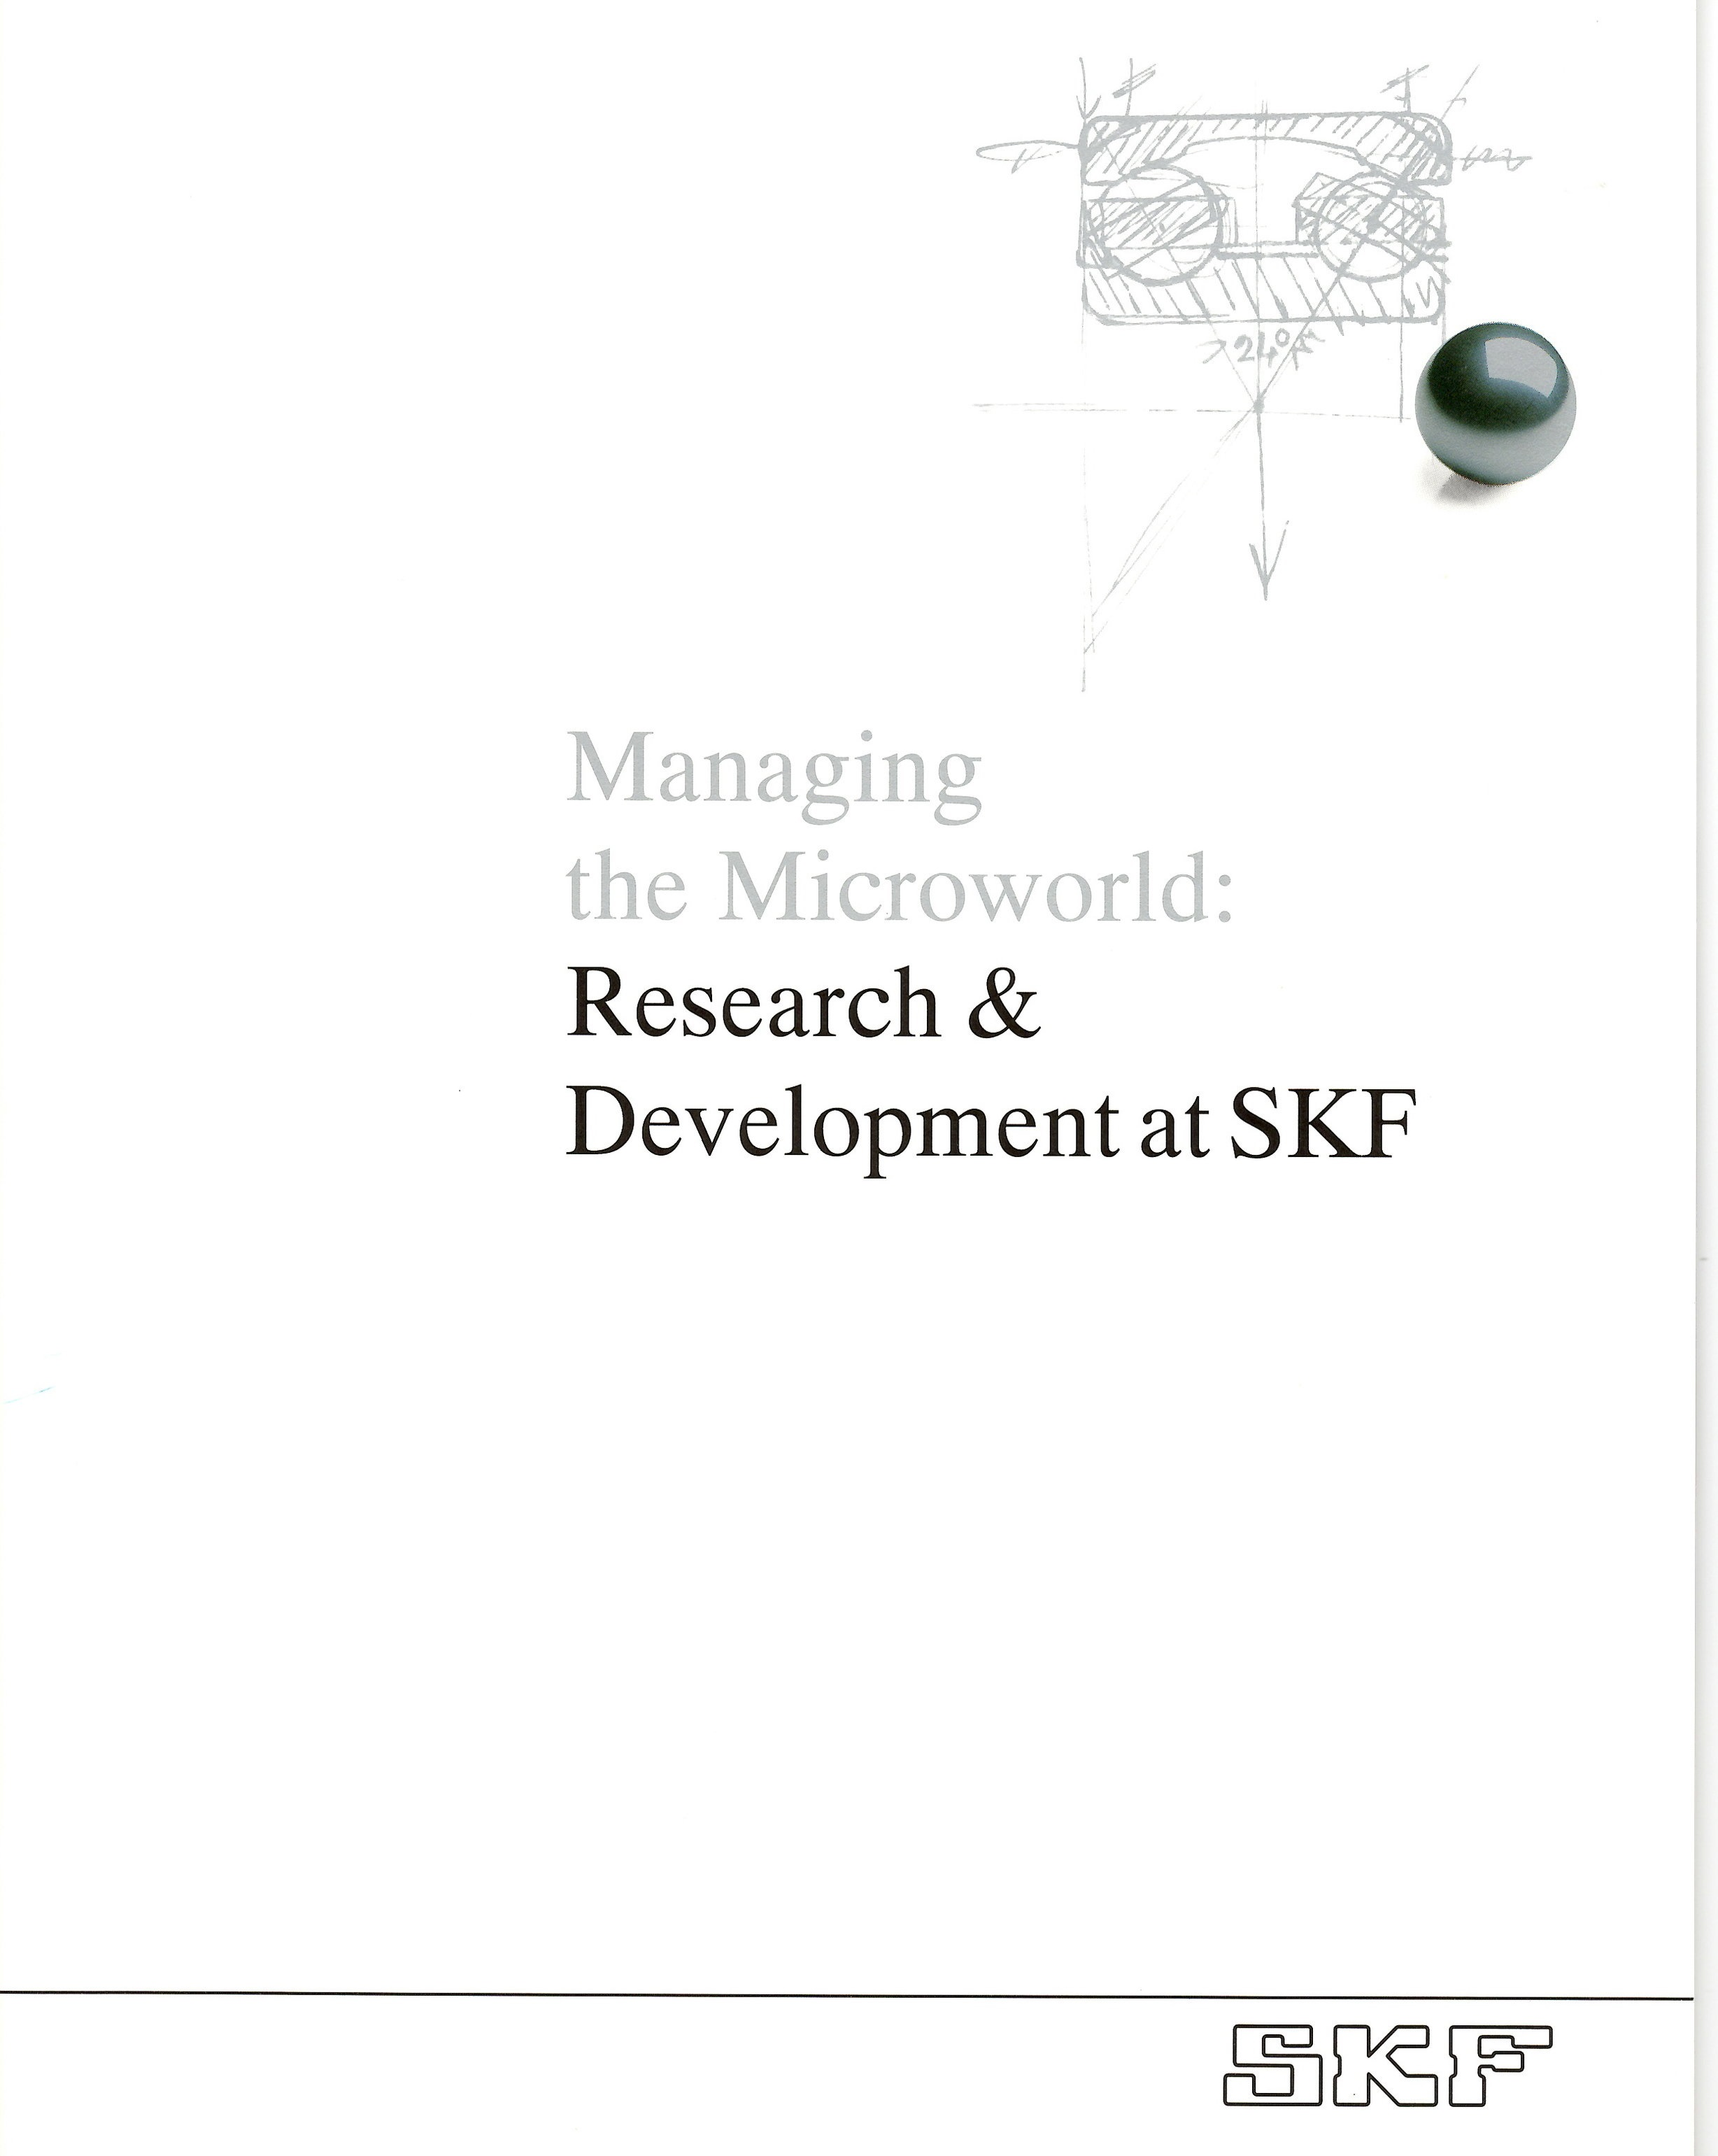 Research and Development Brochure (Detail Below)